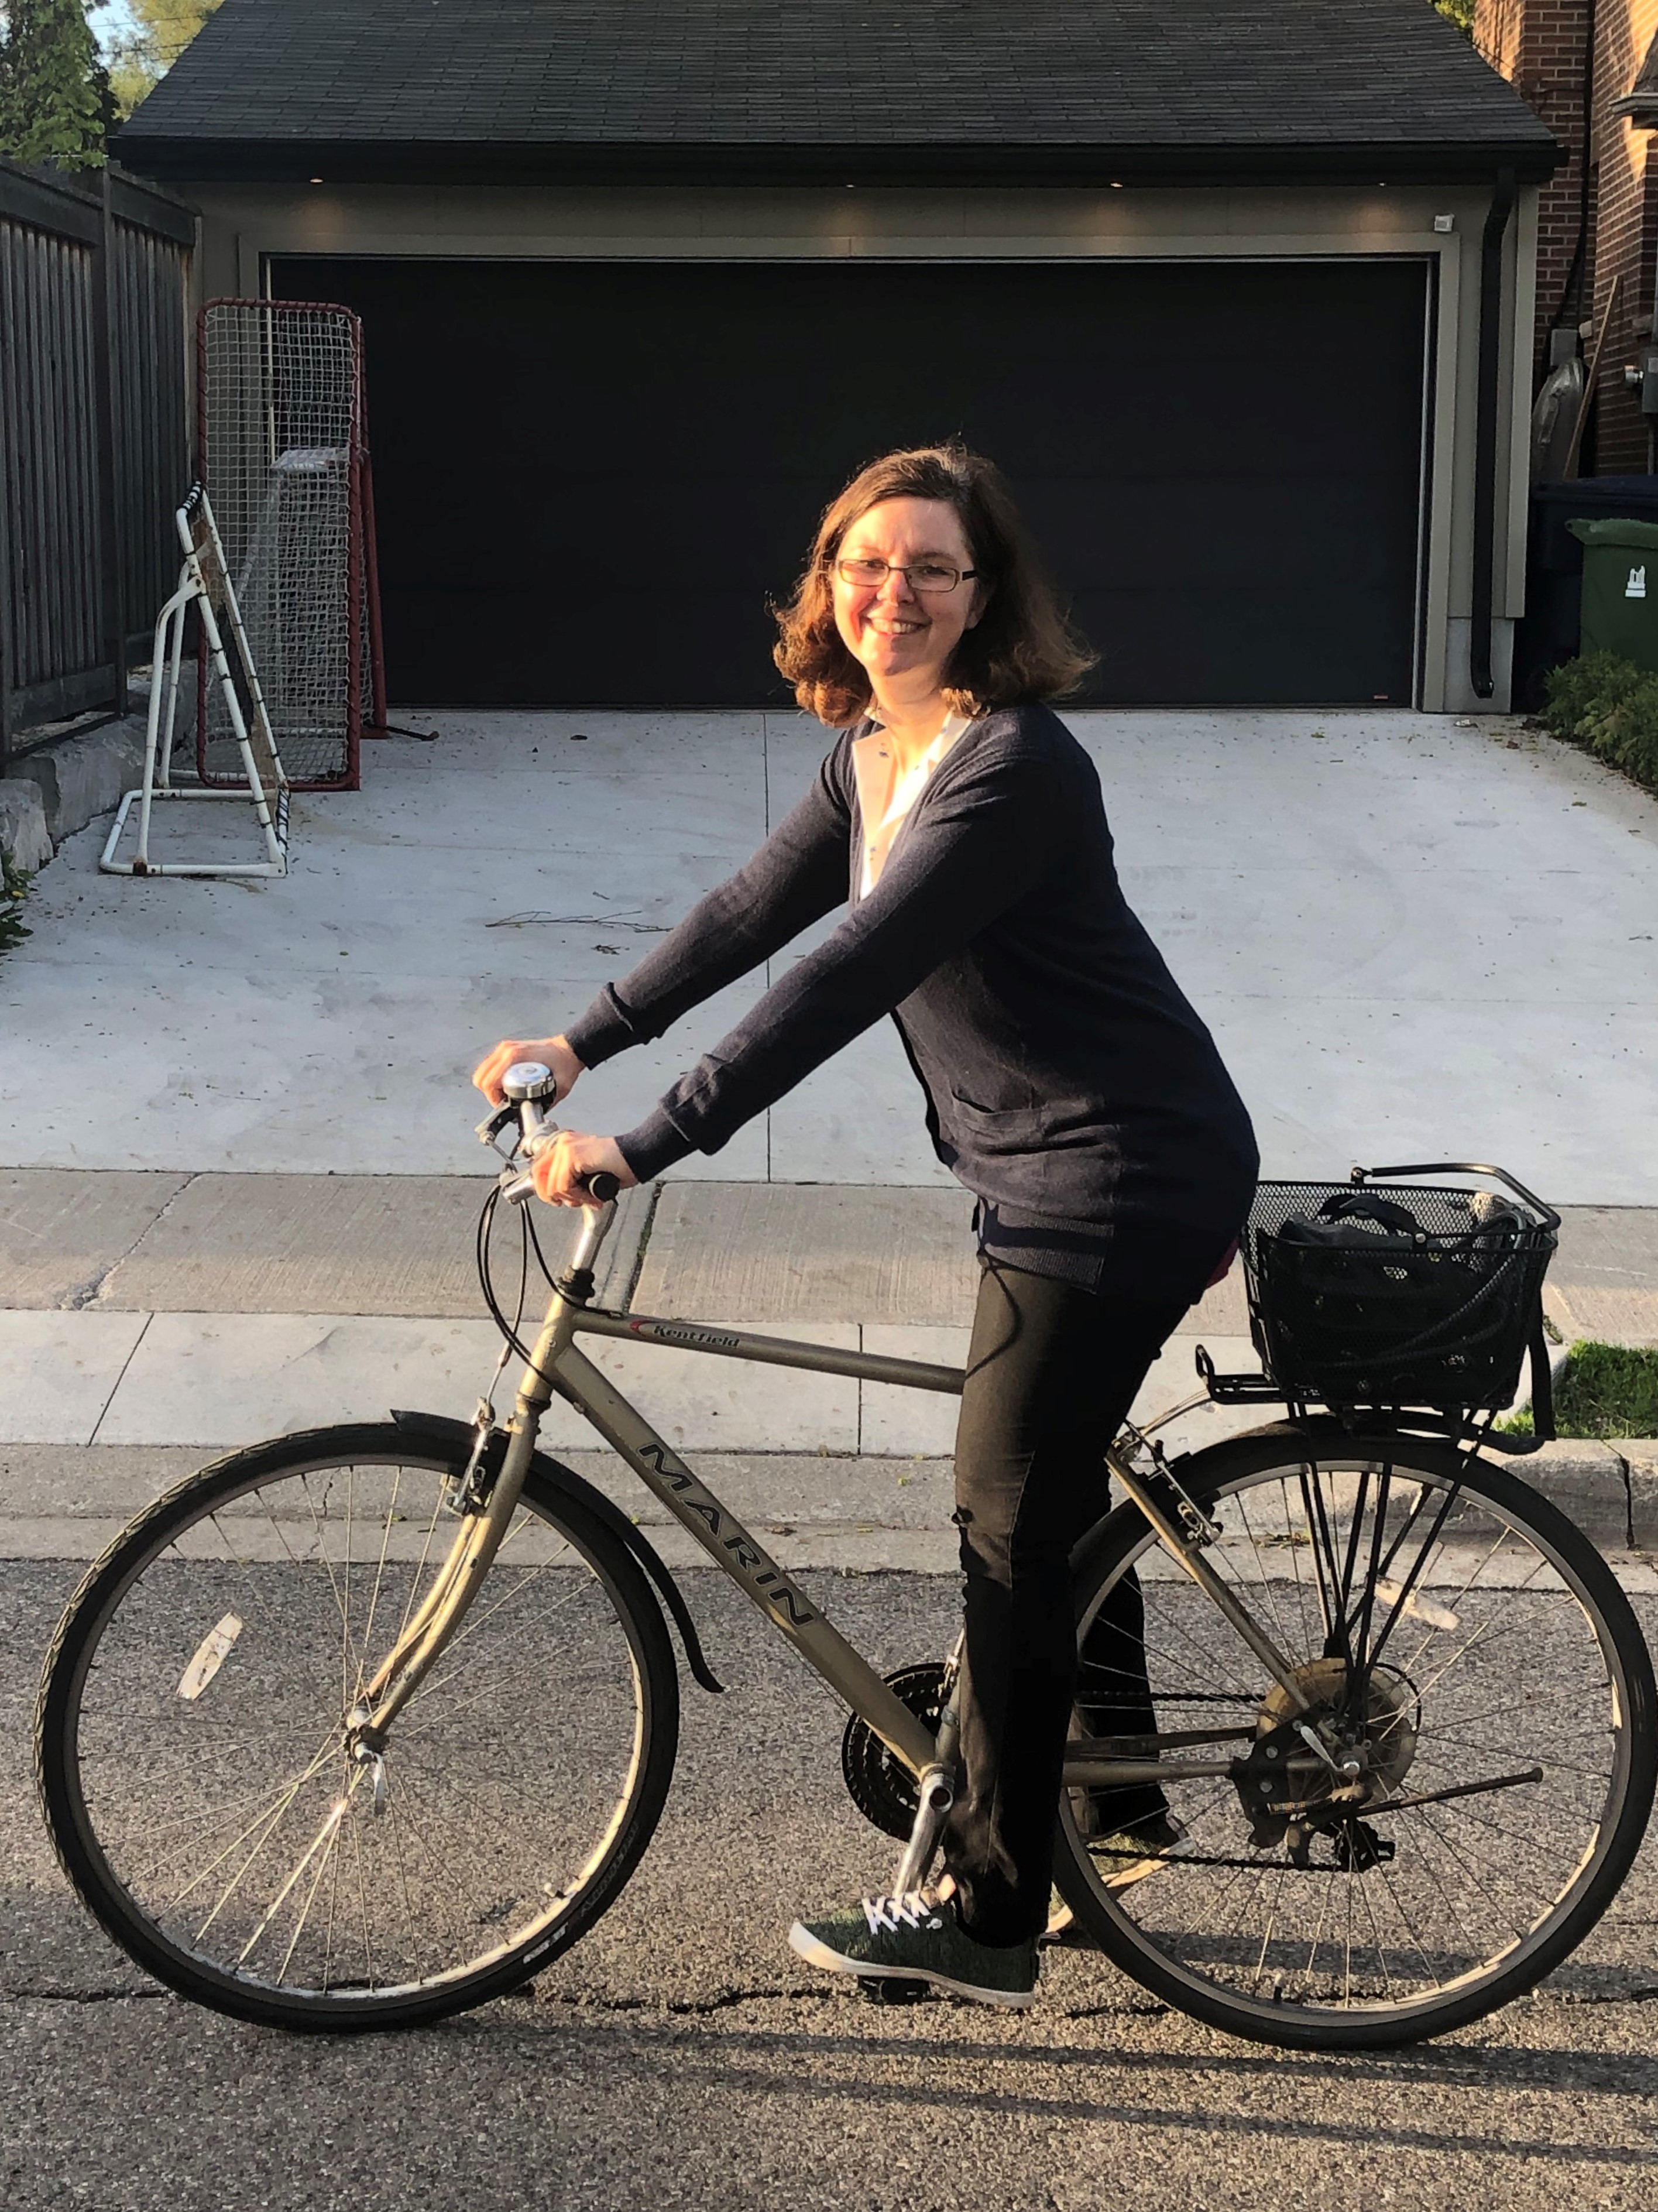 Woman on a bike in front of a driveway